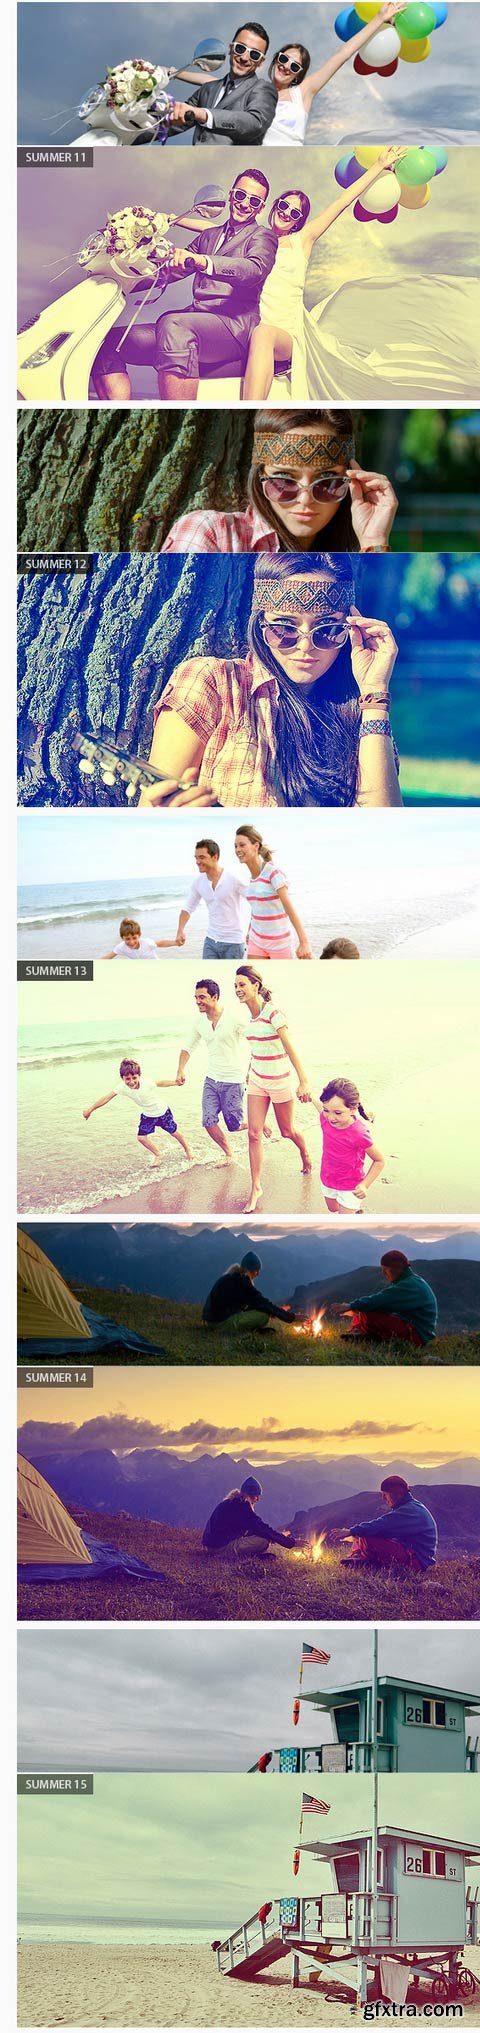 GraphicRiver - Summer Photoshop Action 11838603